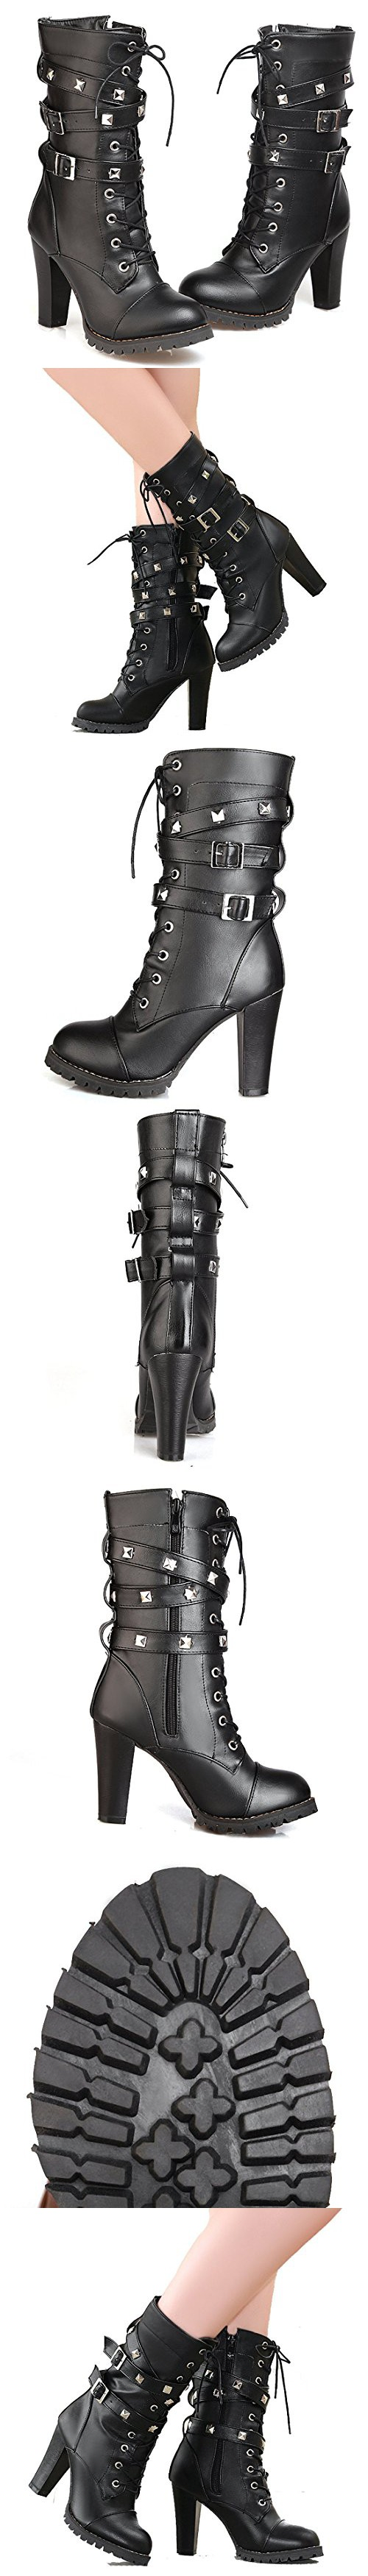 20f985b3b9f1a Susanny Women s Mid Calf Leather Boots Chic High Heel Lace Up Military  Buckle Motorcycle Cowboy Black